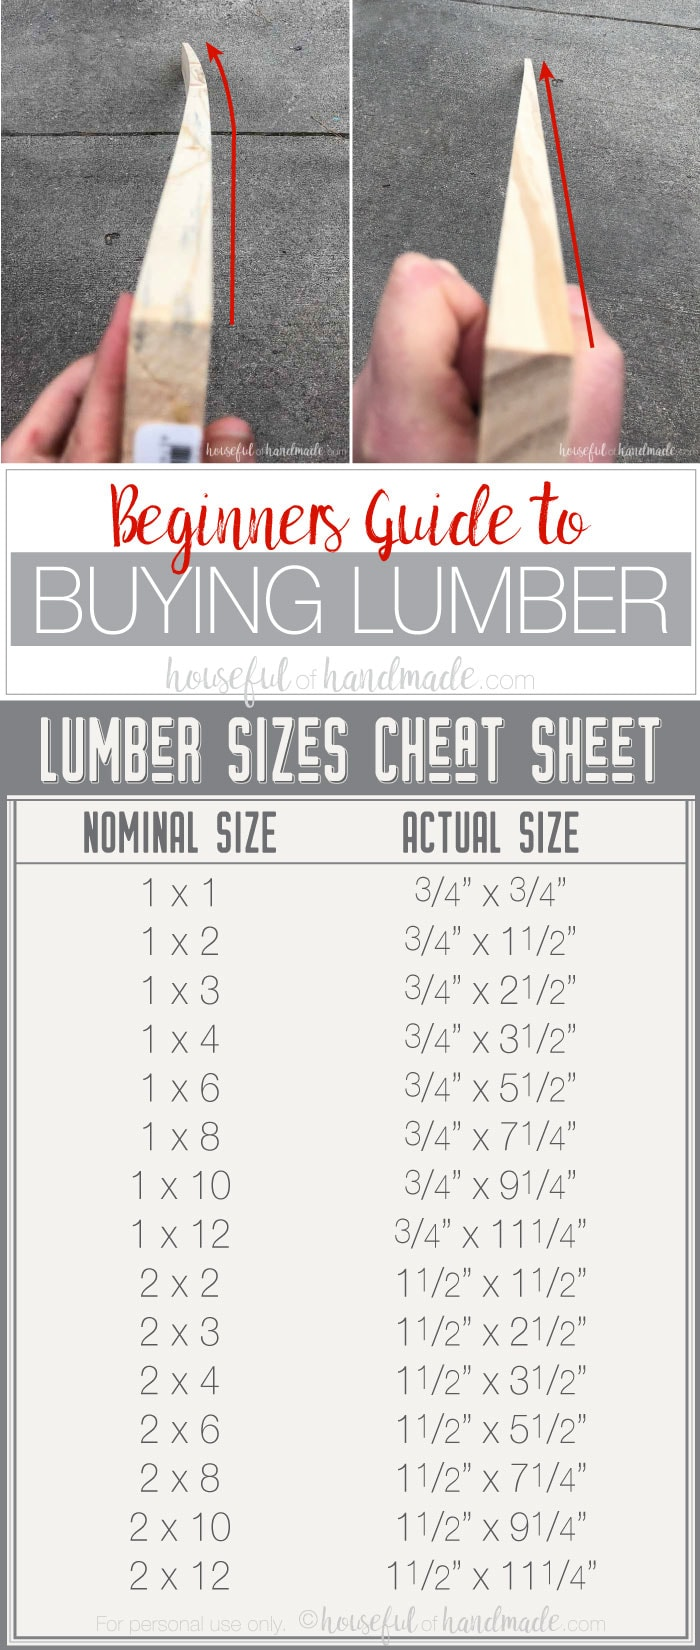 If you want to get started with woodworking, there is a lot to know. The beginners guide to buying lumber will help you pick our the right wood for your project and budget. How do you know what kind to buy for your project? And how do pick the best boards? Why are some boards so much more expensive then other ones? Don't worry, this how to buy lumber guide will answer all your questions. Housefulofhandmade.com